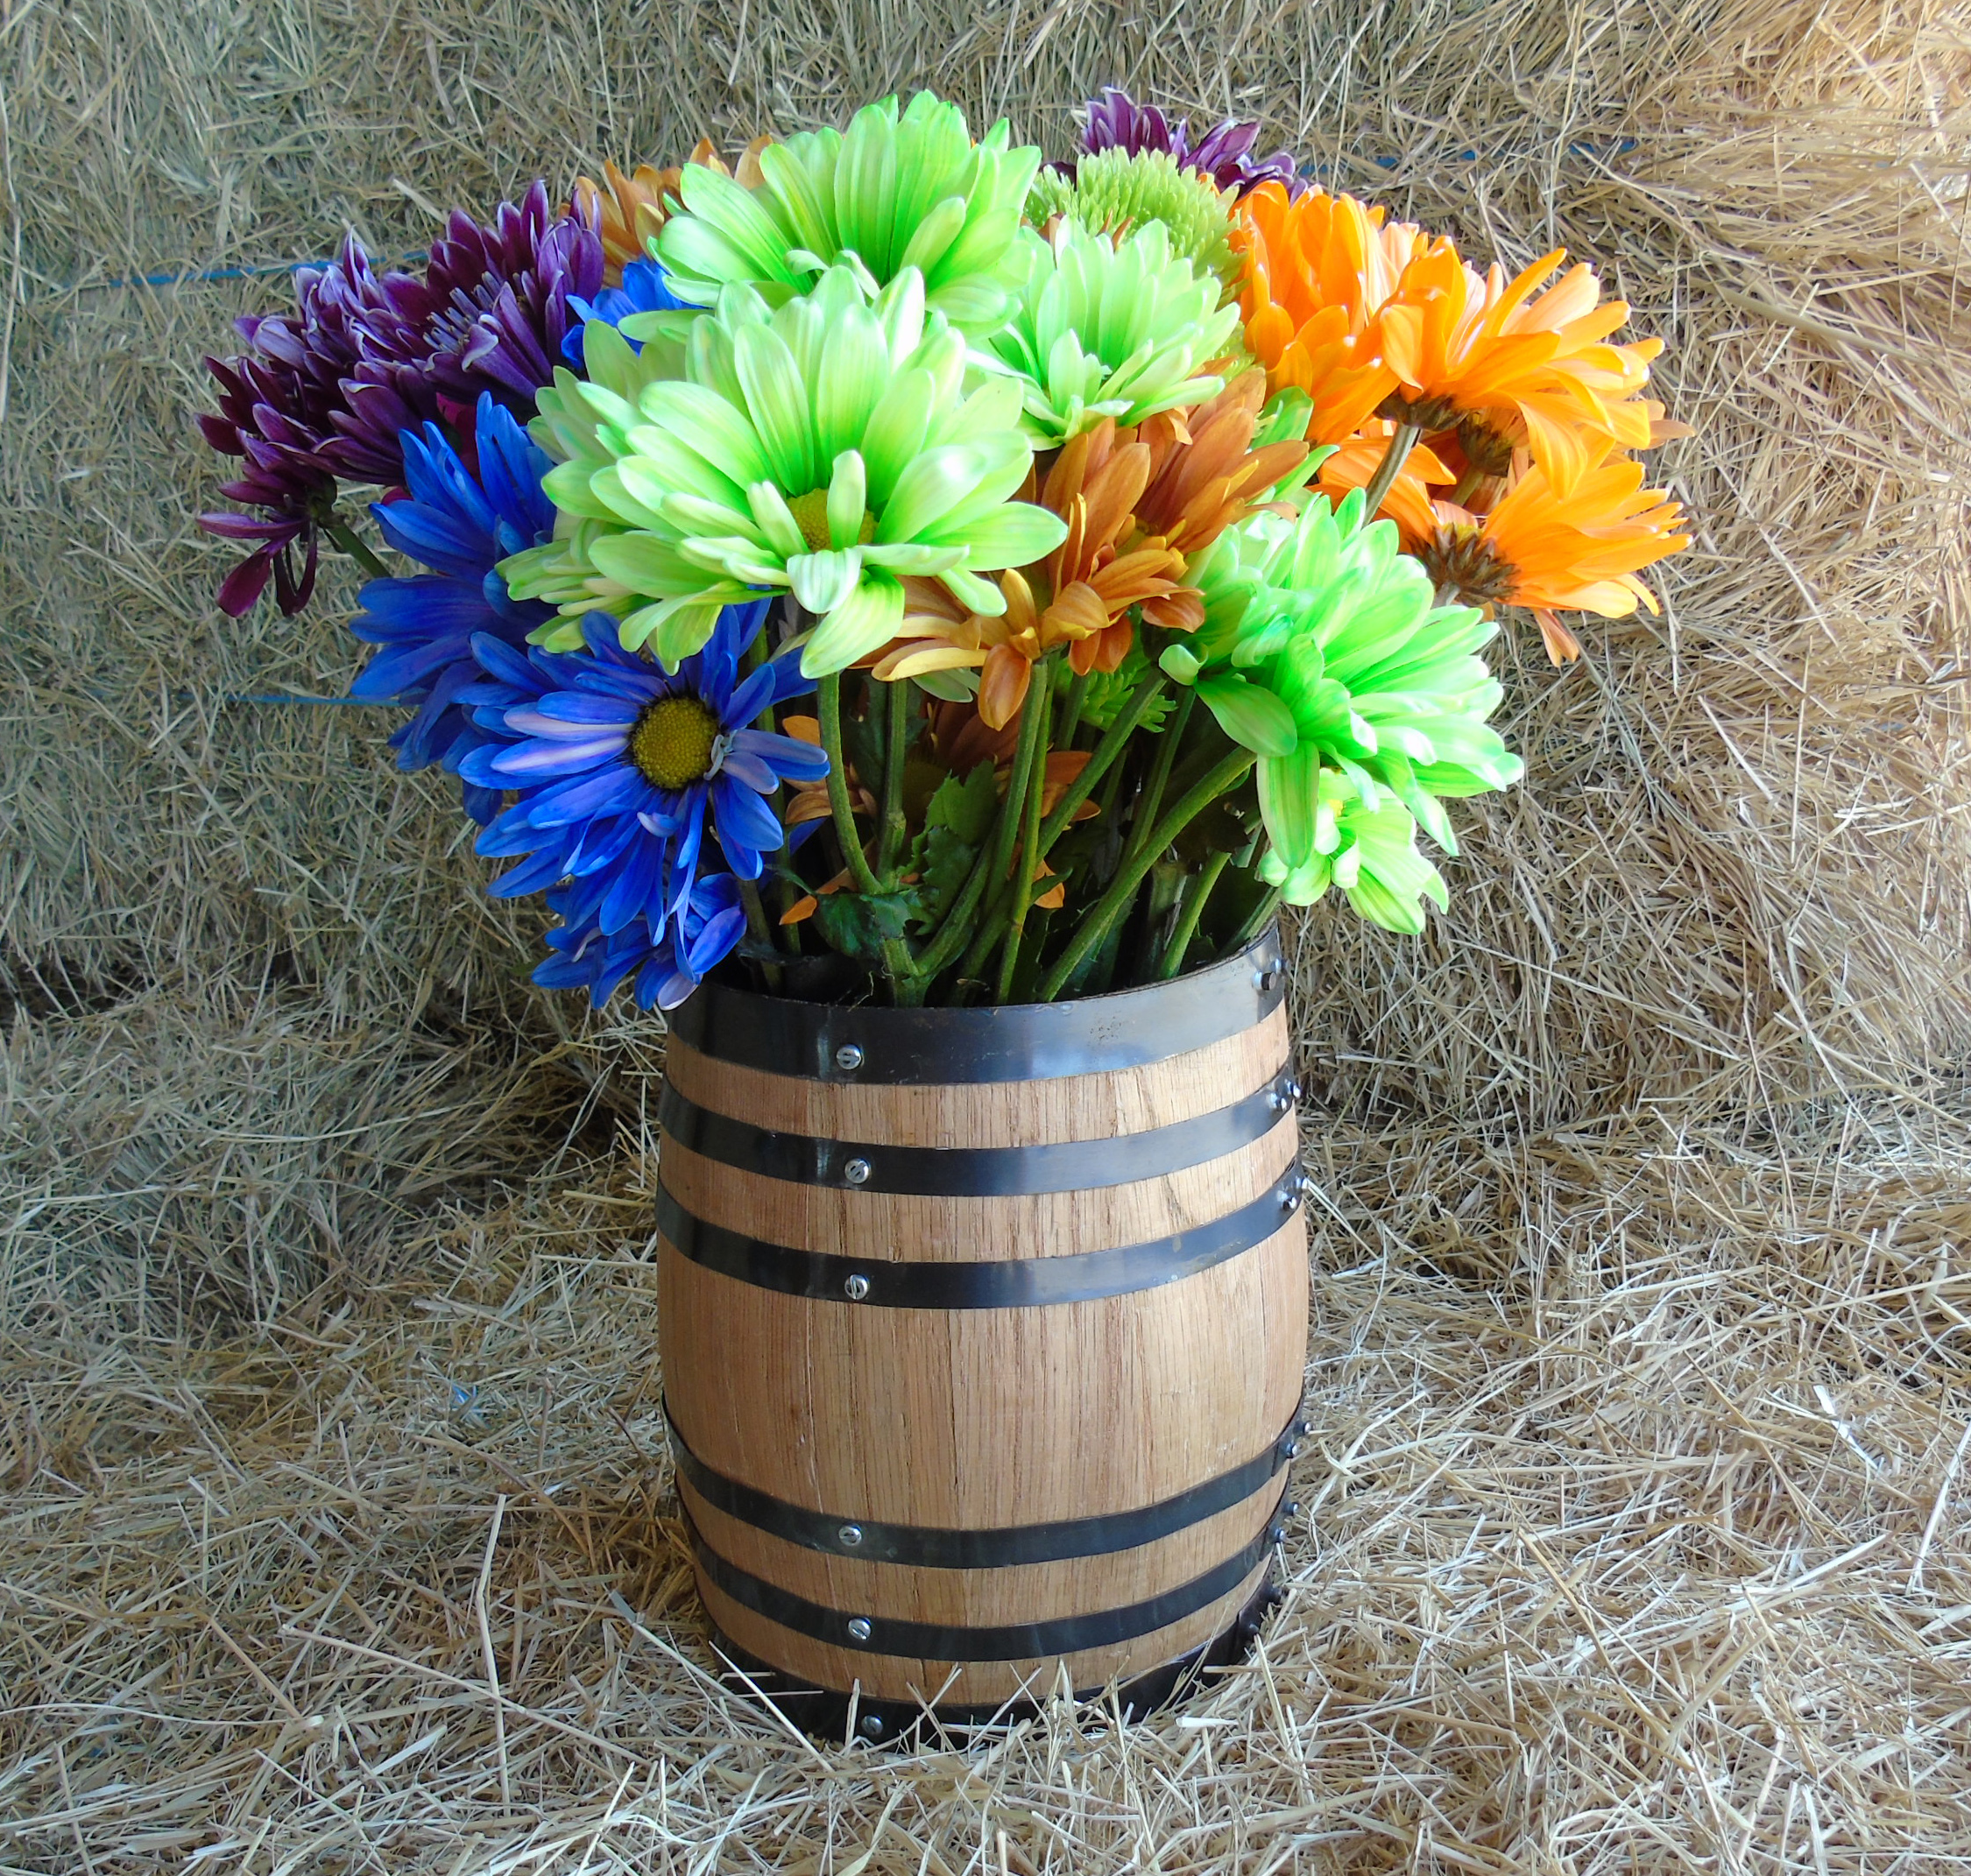 Oak barrel centerpiece flower vase mini oak barrels oak barrel centerpiece flower vase reviewsmspy